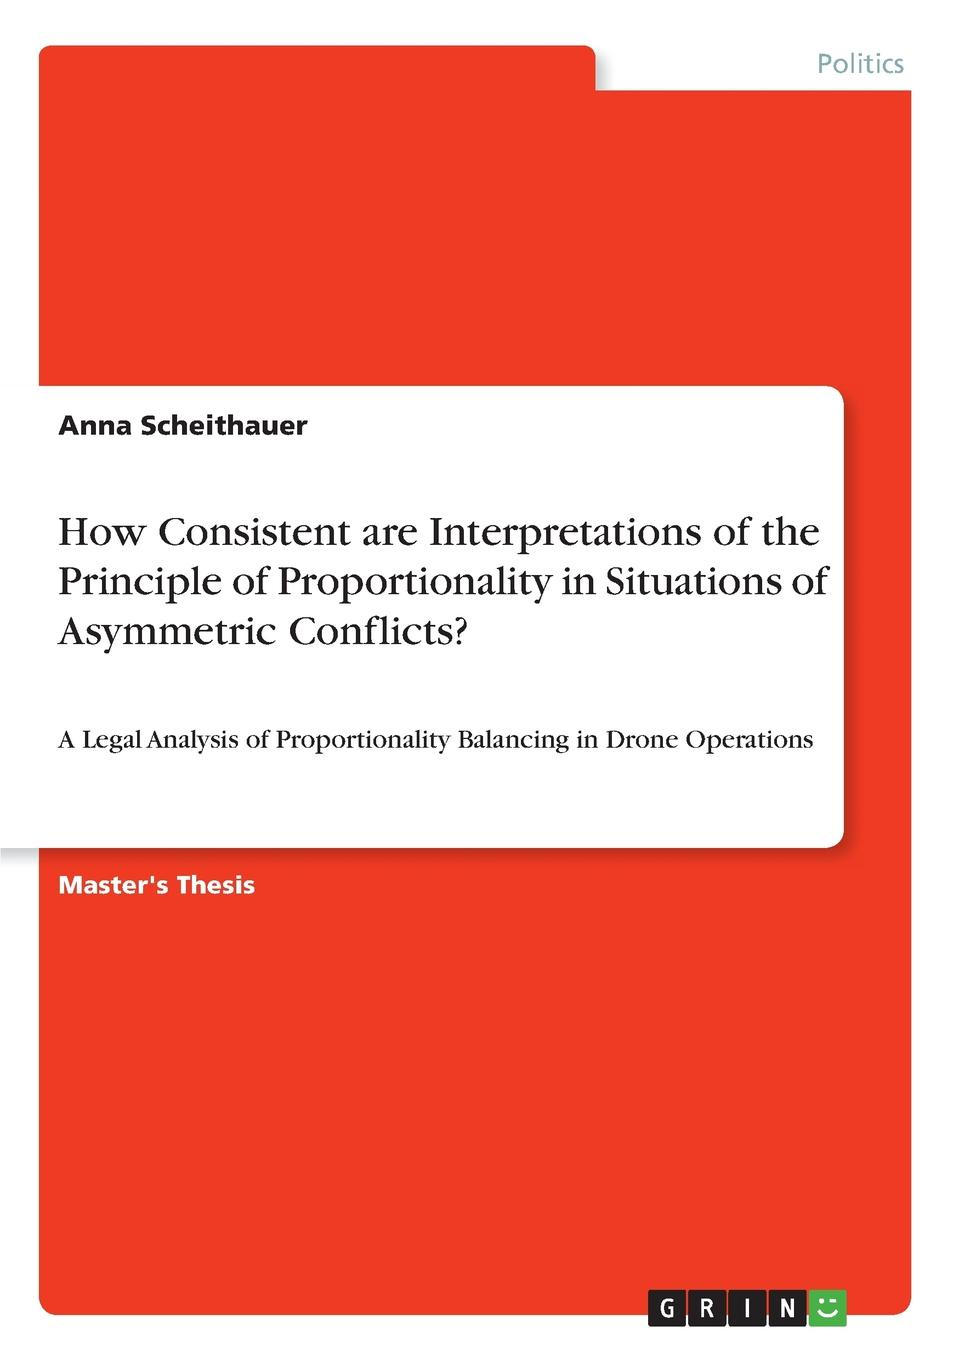 Anna Scheithauer How Consistent are Interpretations of the Principle of Proportionality in Situations of Asymmetric Conflicts. p r kalidhass conflict of norms in a fragmented international legal system a critical analysis